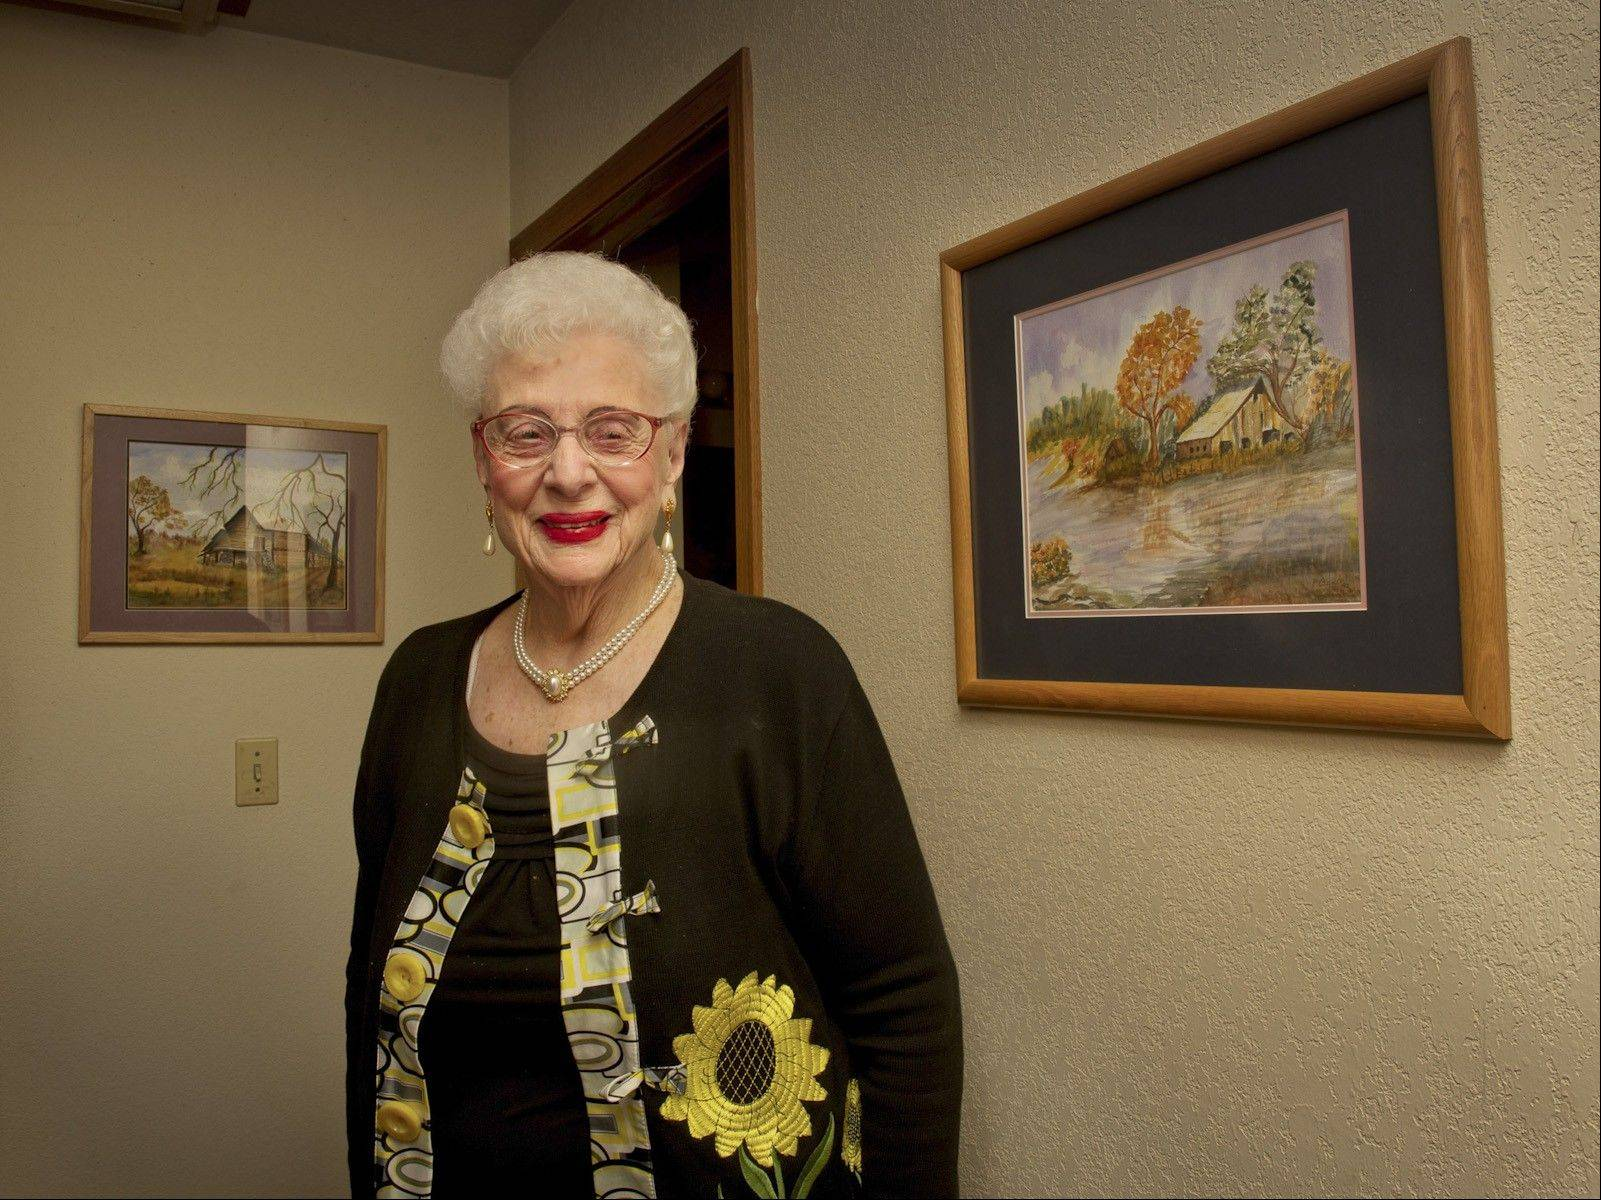 SHNS PHOTO/THE SACRAMENTO BEEVirginia Bane, 89, was among the first U.S. patients age 75 or older to get a mini-telescope implanted in her eye to treat macular degeneration.